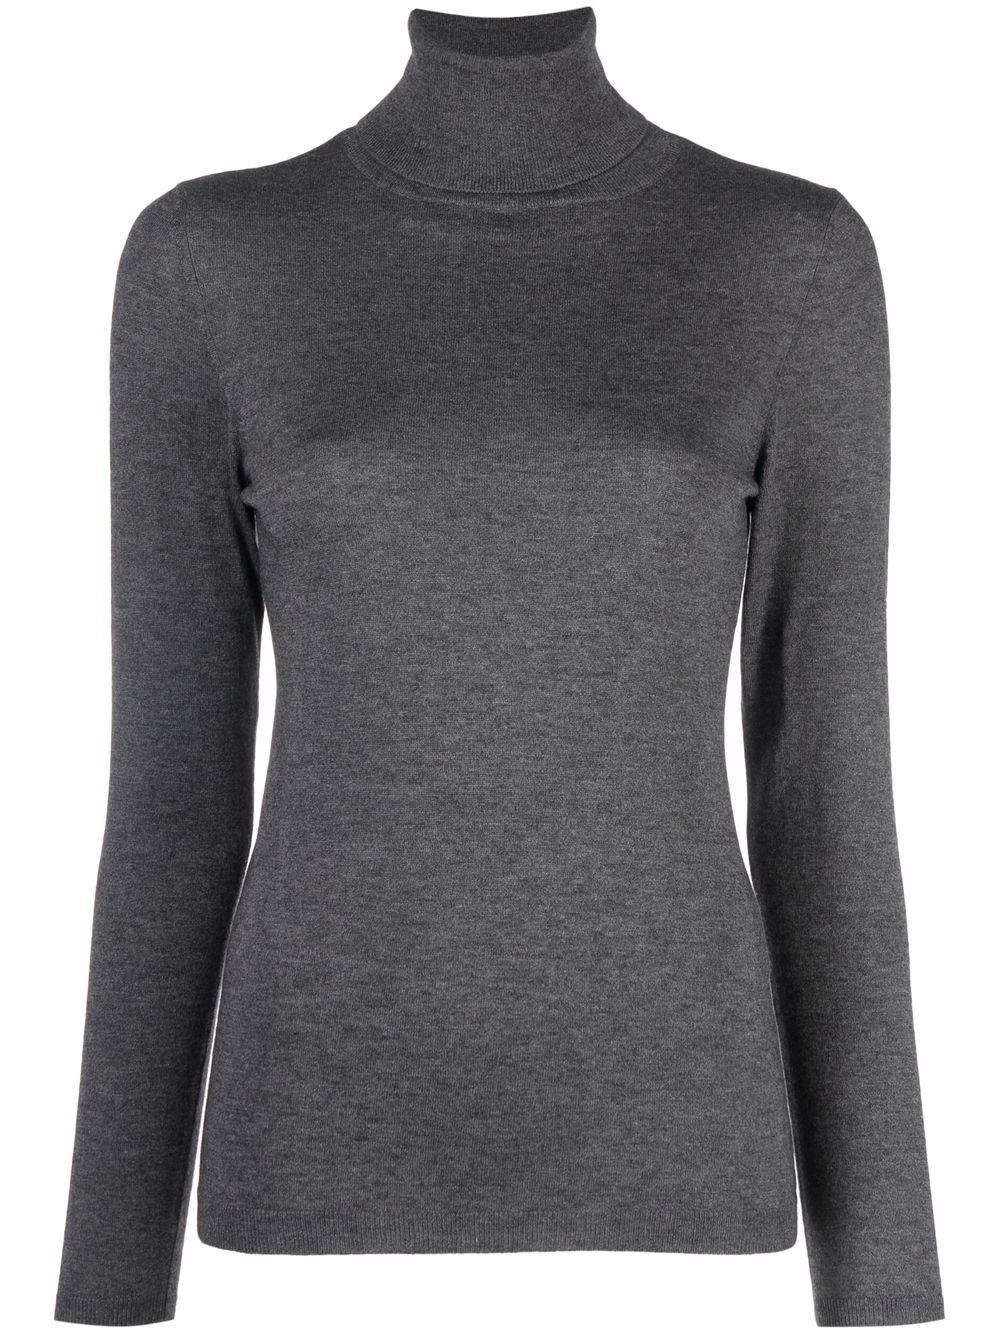 SNOBBY SHEEP- Cashmere Blend Turtle-neck Sweater- Woman- 44 - Grey